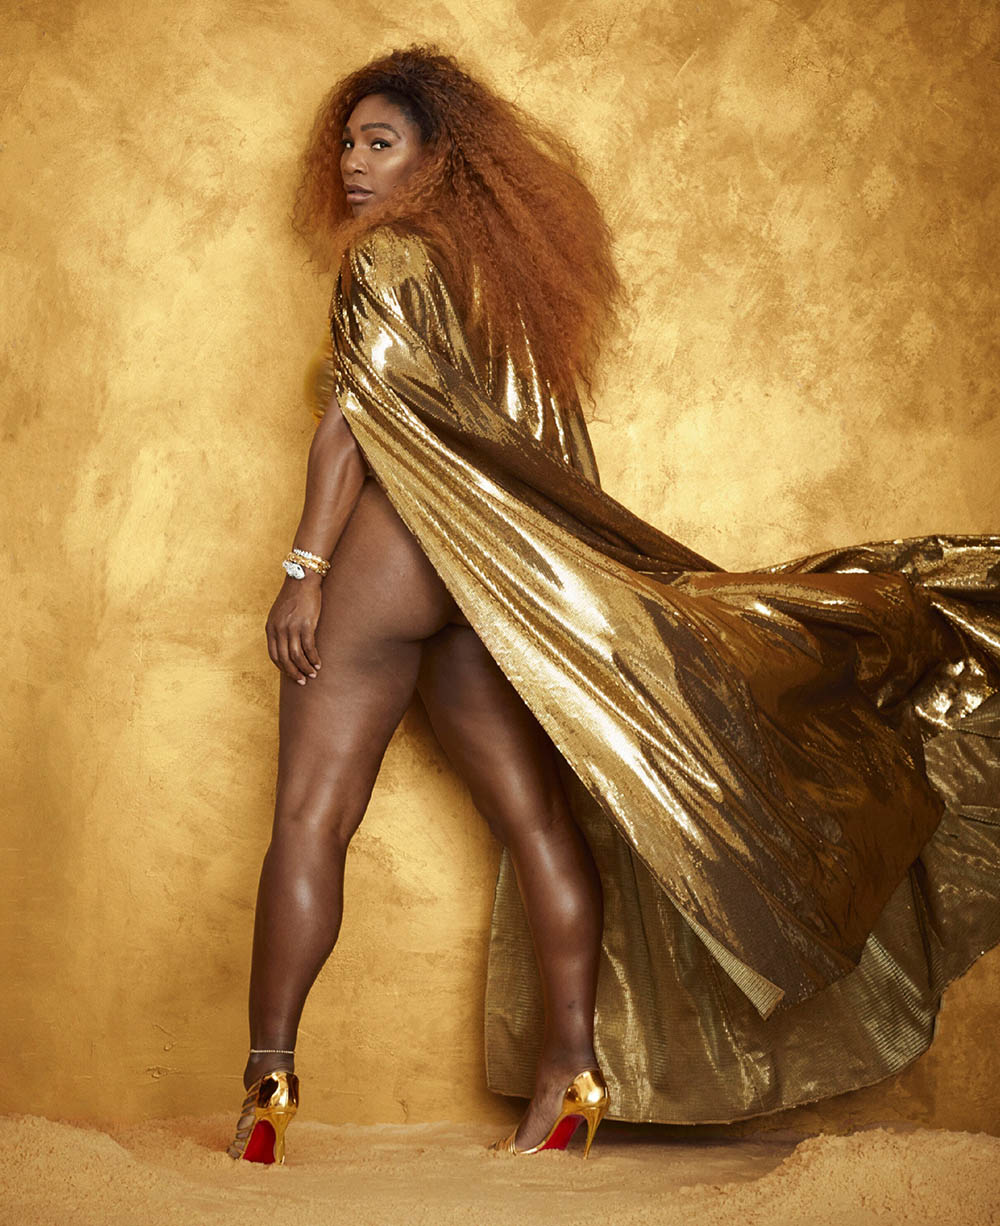 Serena Williams covers Harper's Bazaar US August 2019 by Alexi Lubomirski